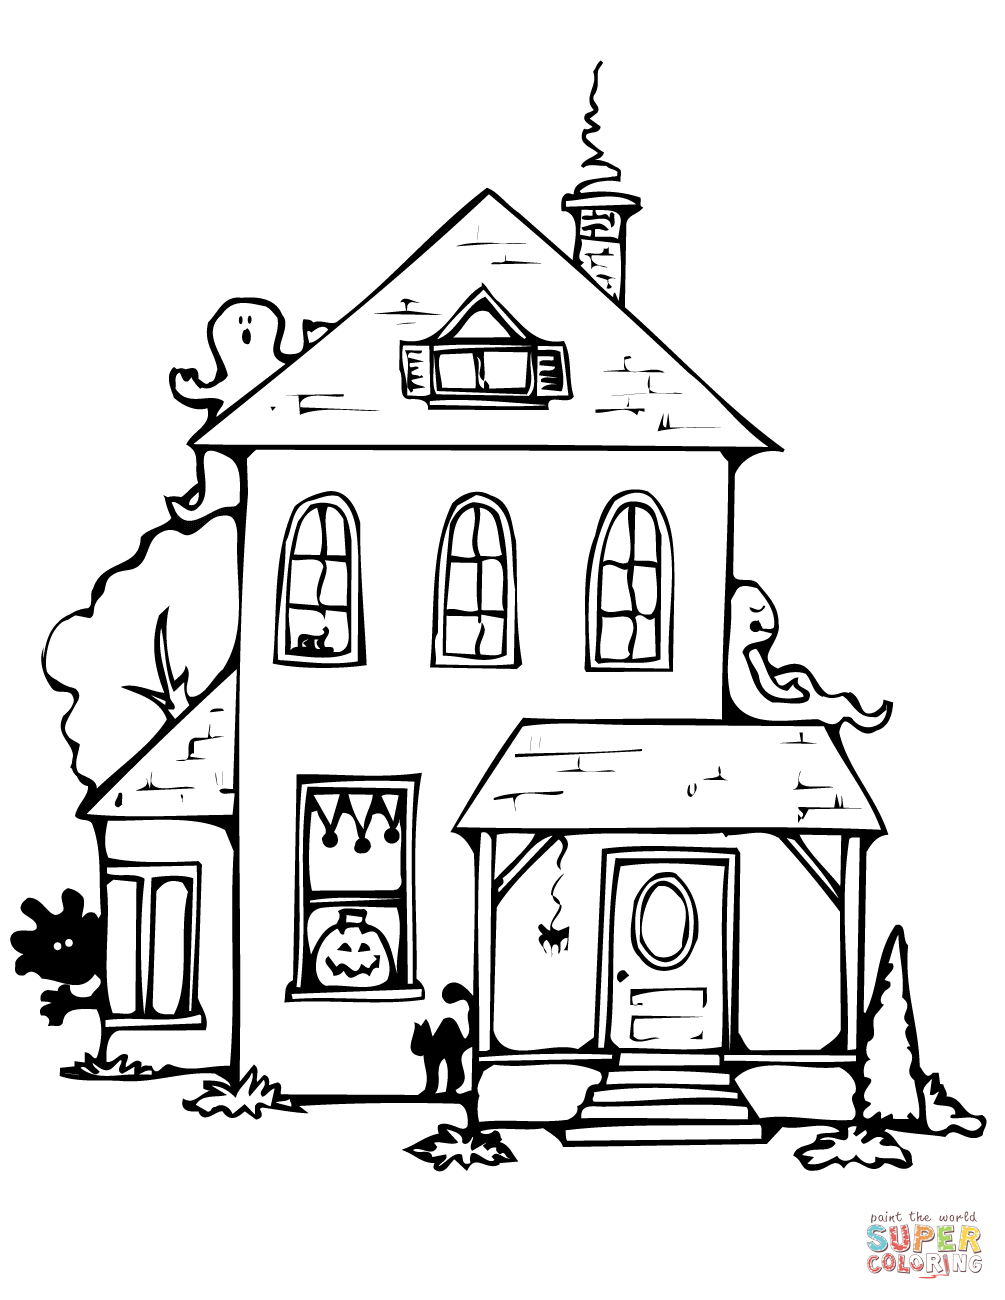 haunted house coloring page halloween coloring pages haunted house coloring page house coloring page haunted